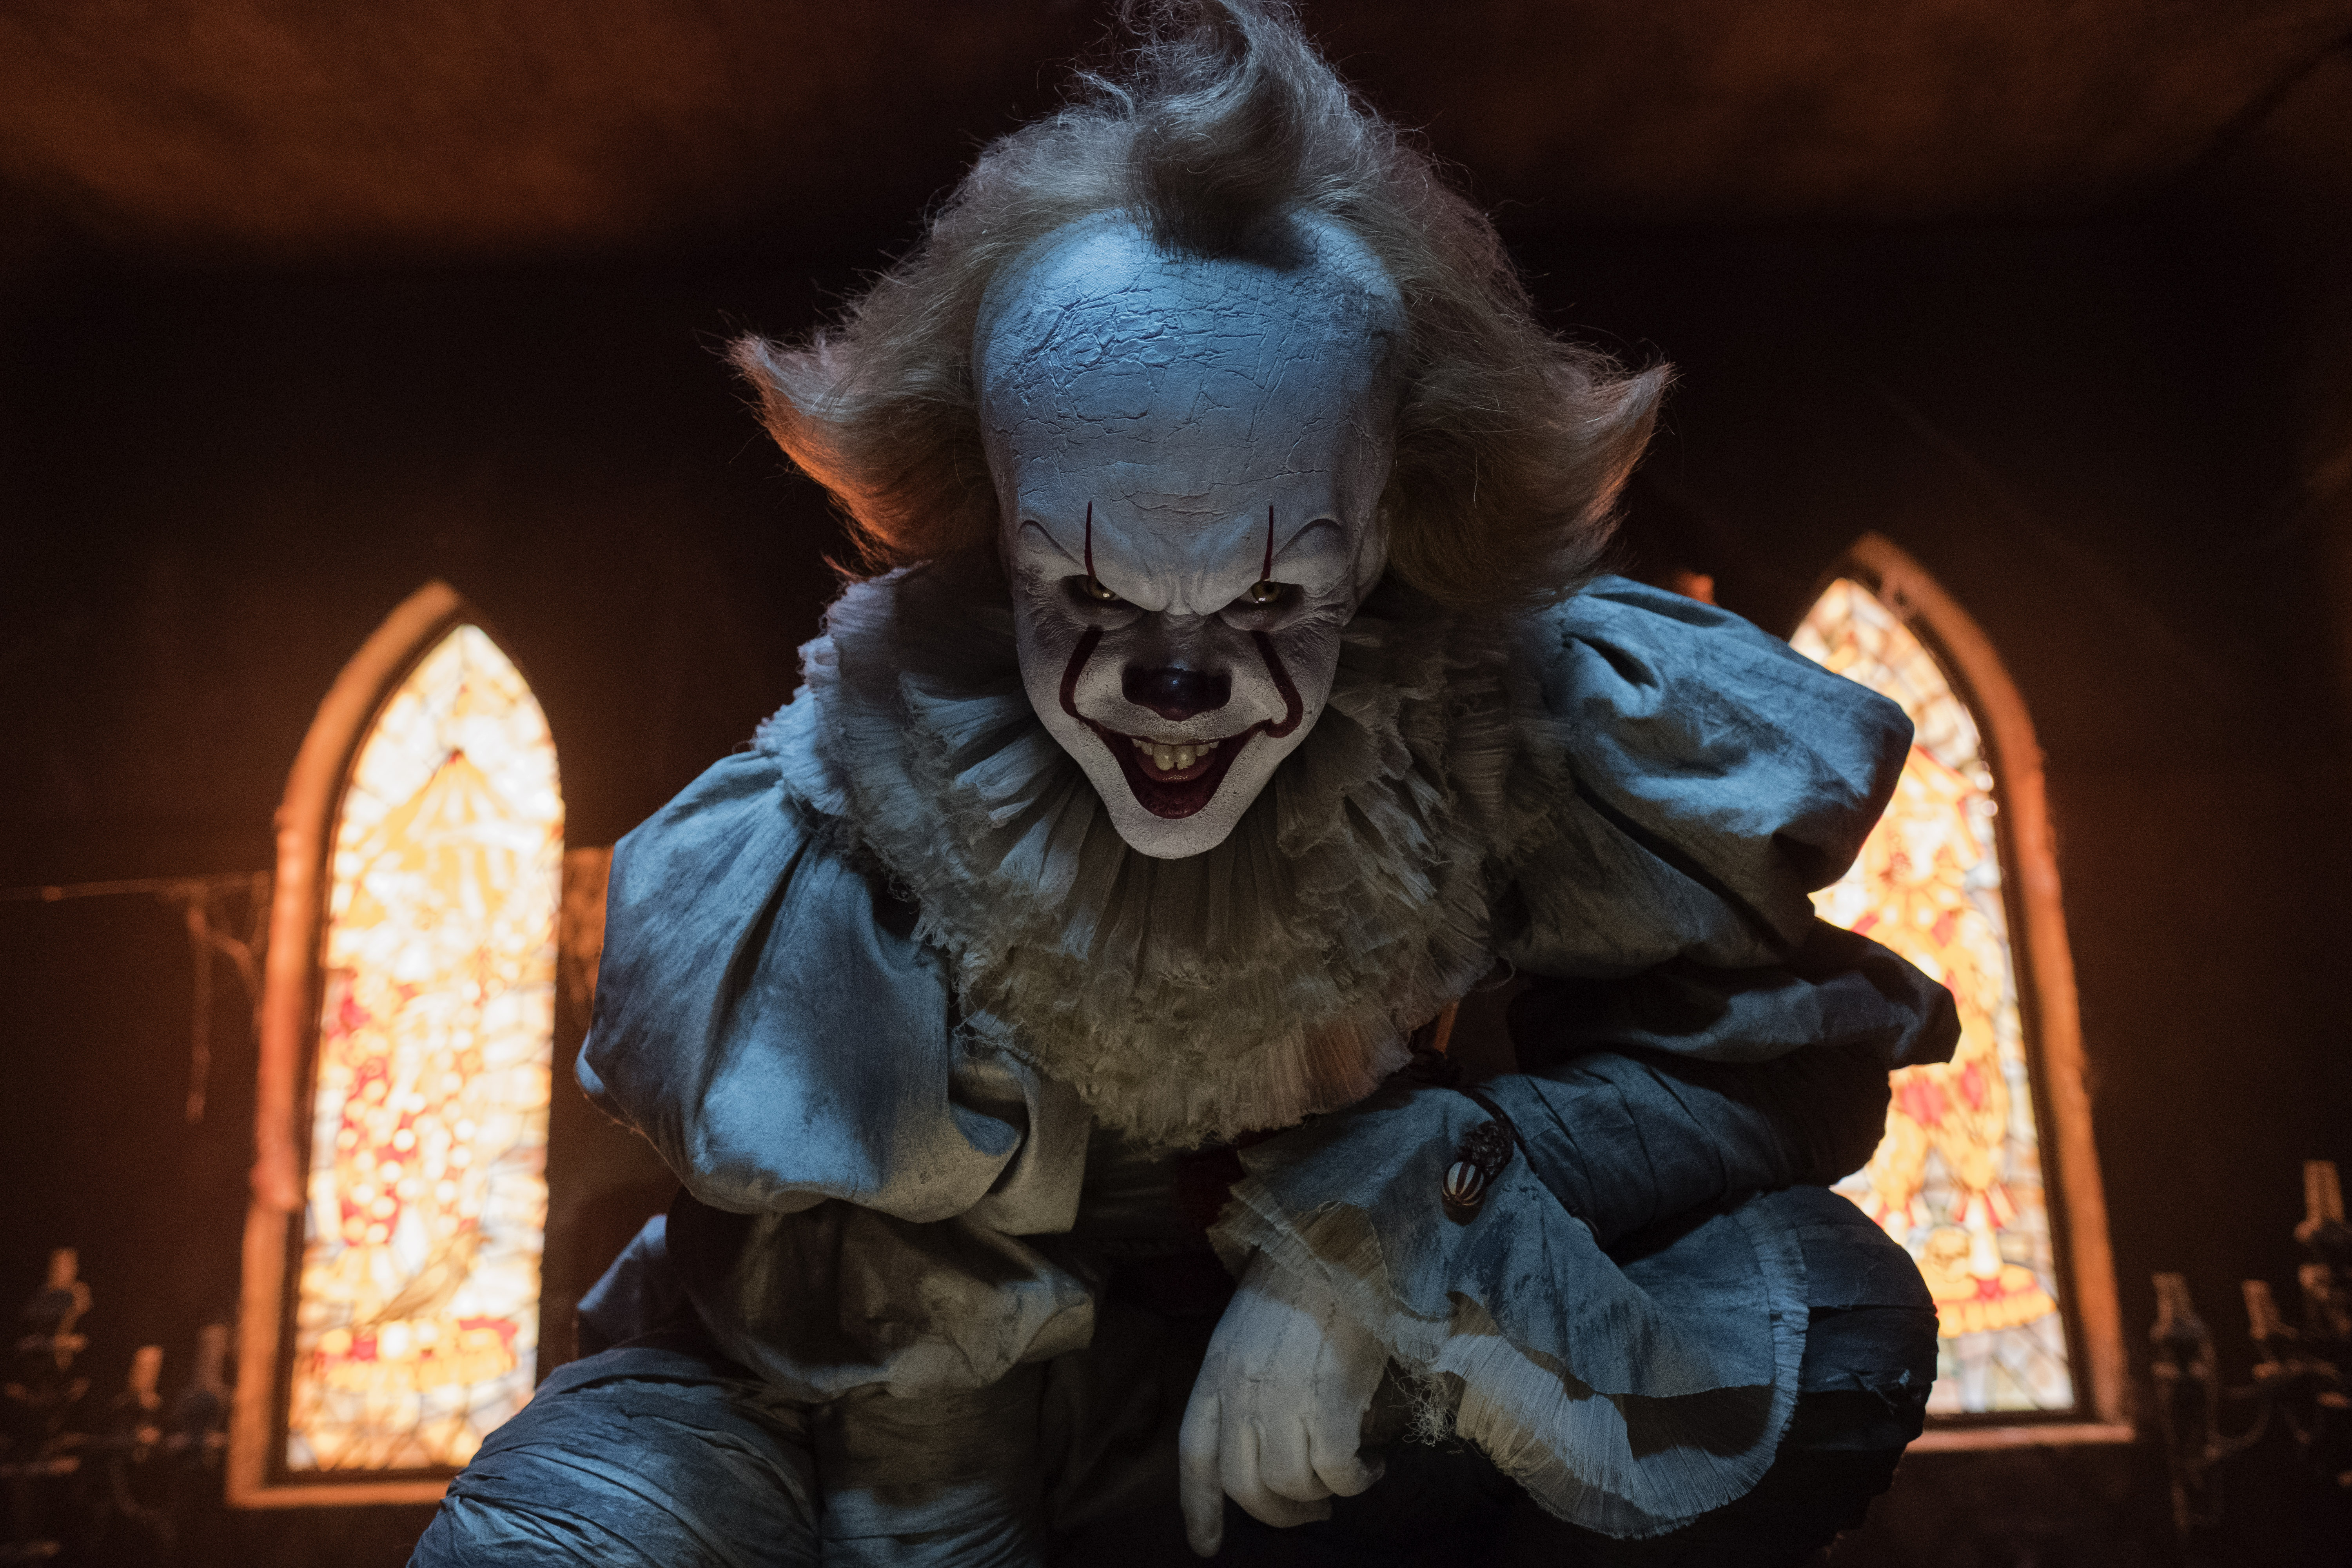 Pennywise the evil clown in his lair.